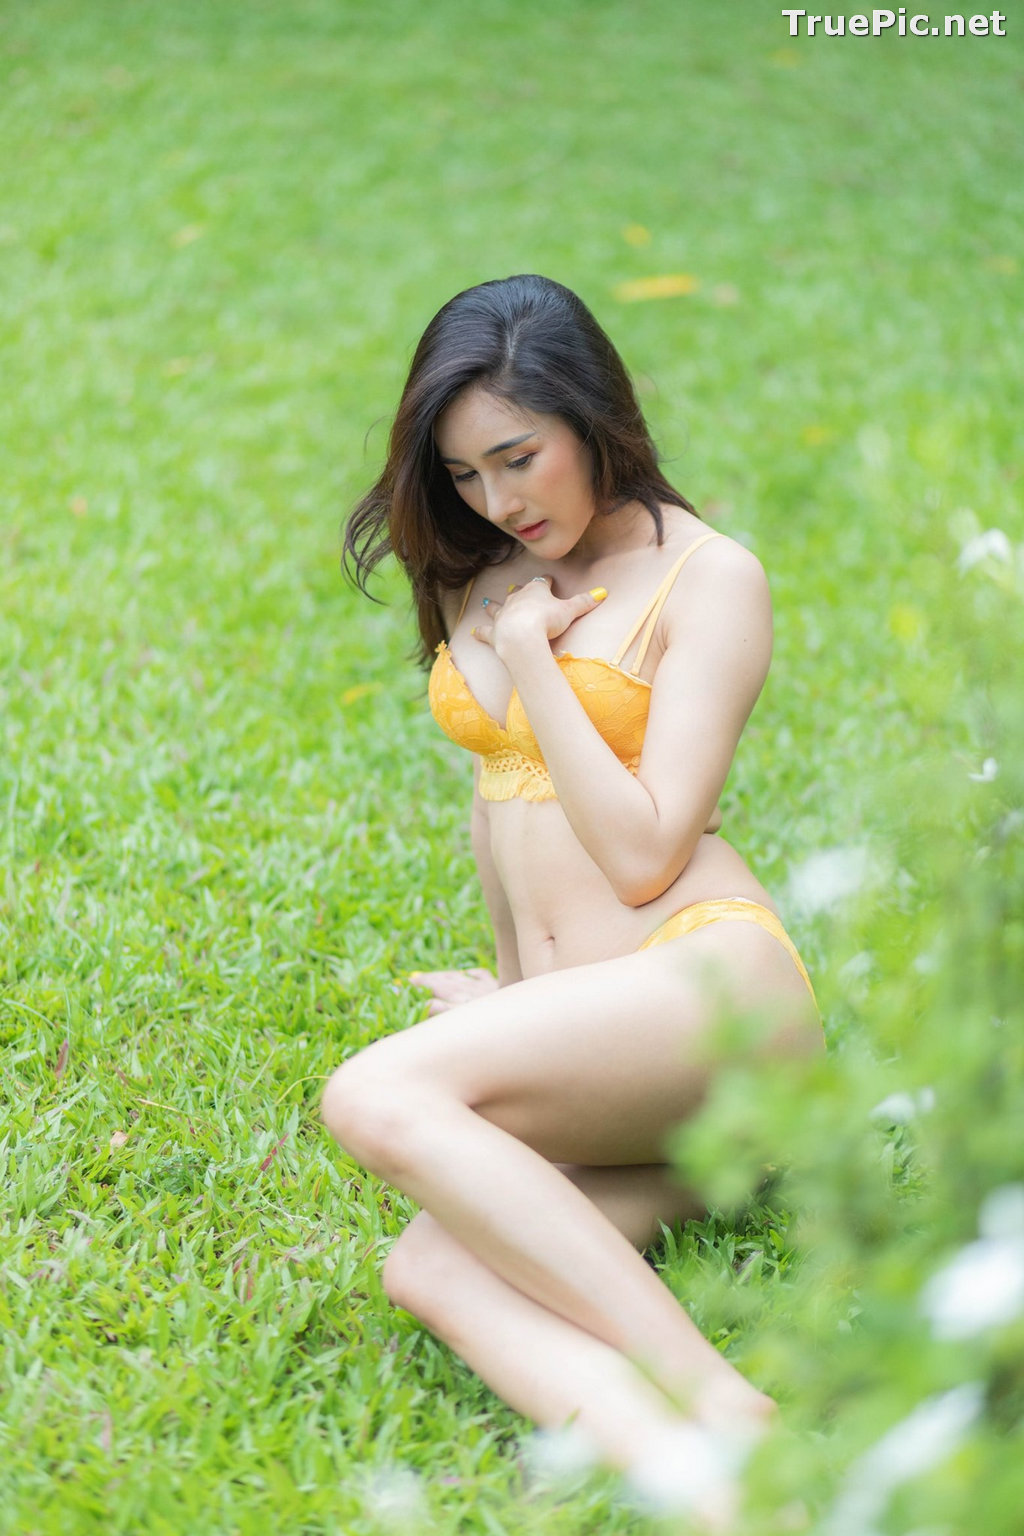 Image Thailand Model - ณัฐกนก สิทธิรัตน์ (Aomam) - Yellow and White Lingerie - TruePic.net - Picture-8